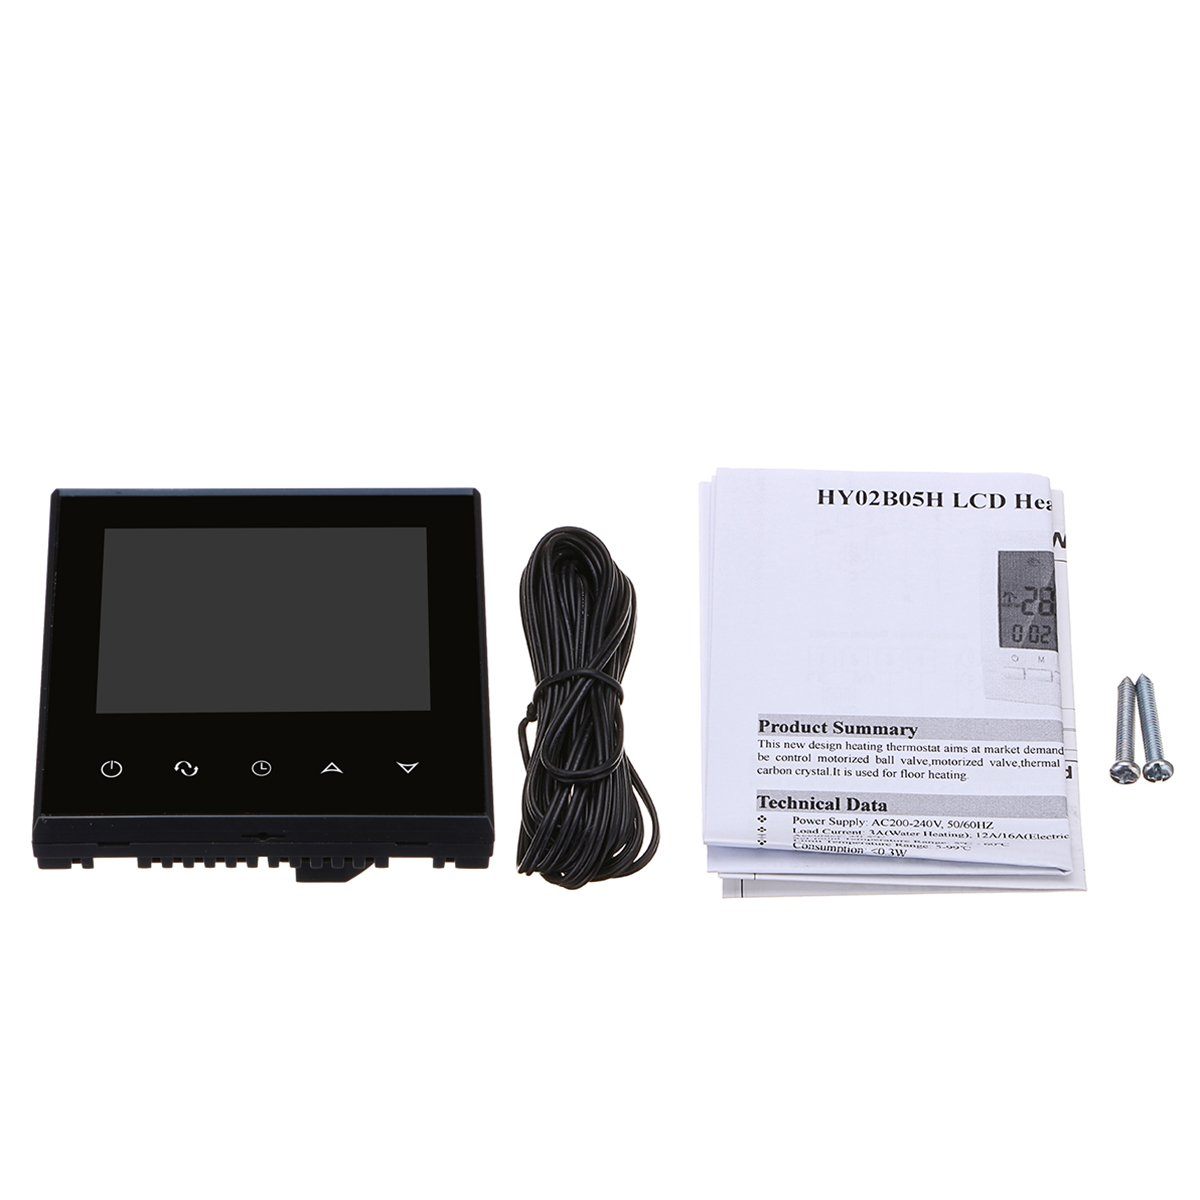 MASUNN WiFi LCD Digital Inalámbrico Smart Programable Termostato Controlador de Temperatura: Amazon.es: Hogar